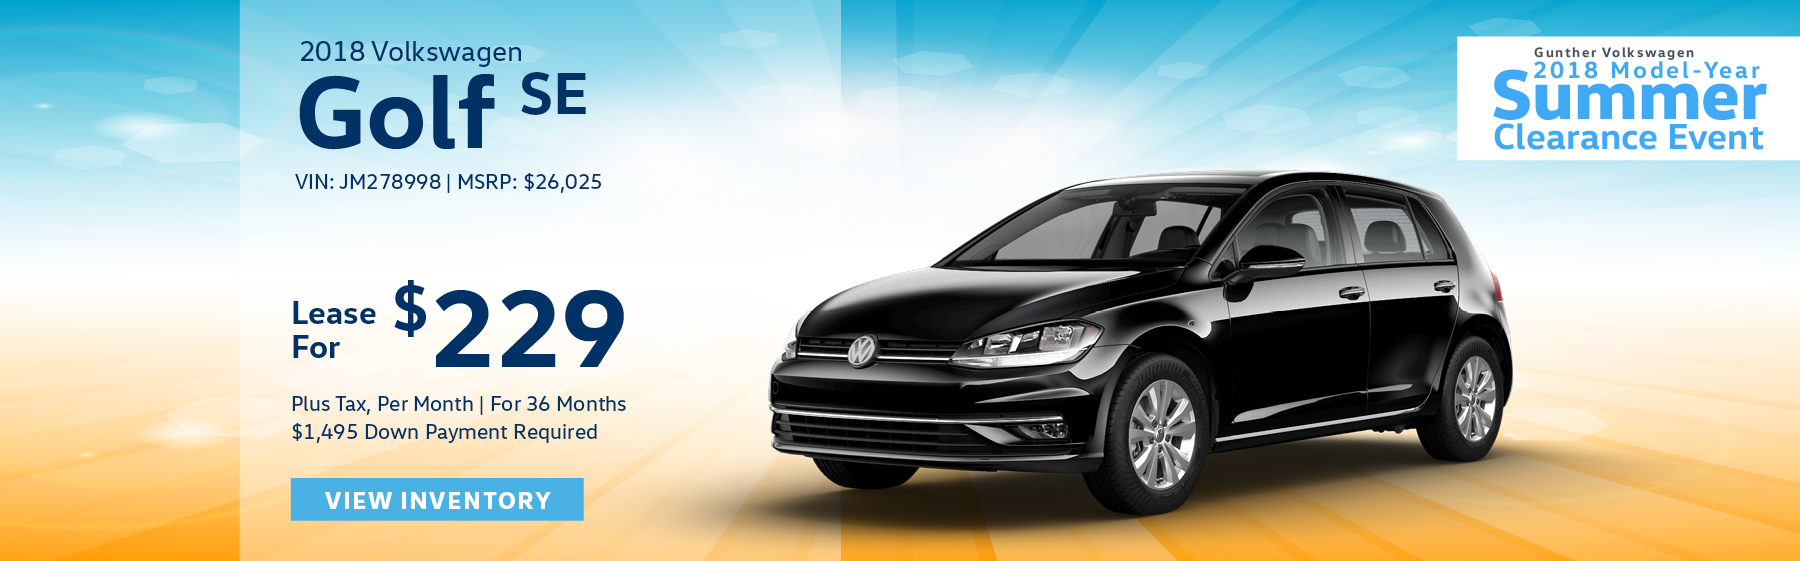 Lease the 2018 Volkswagen Golf SE for $229 per month, plus tax for 36 months. Click here to view inventory.